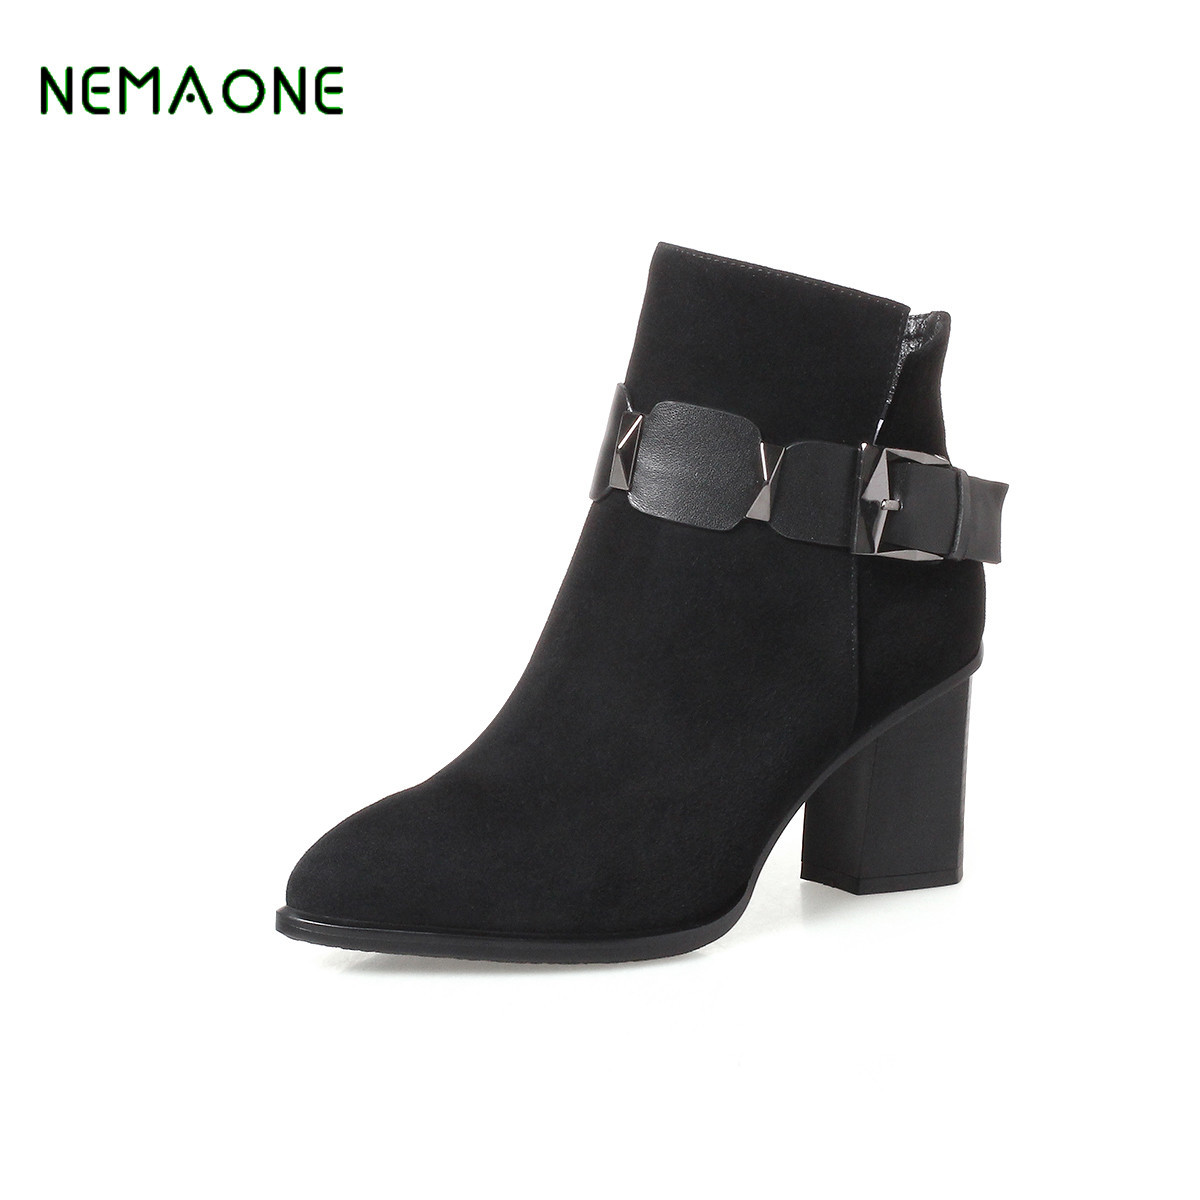 NEMAONE 2017 NEW fashion genuine leather Ankle Boots High Quality Wipe Color Fashion Women's Boots New Short Boots nemaone new fashion 2018 genuine leather